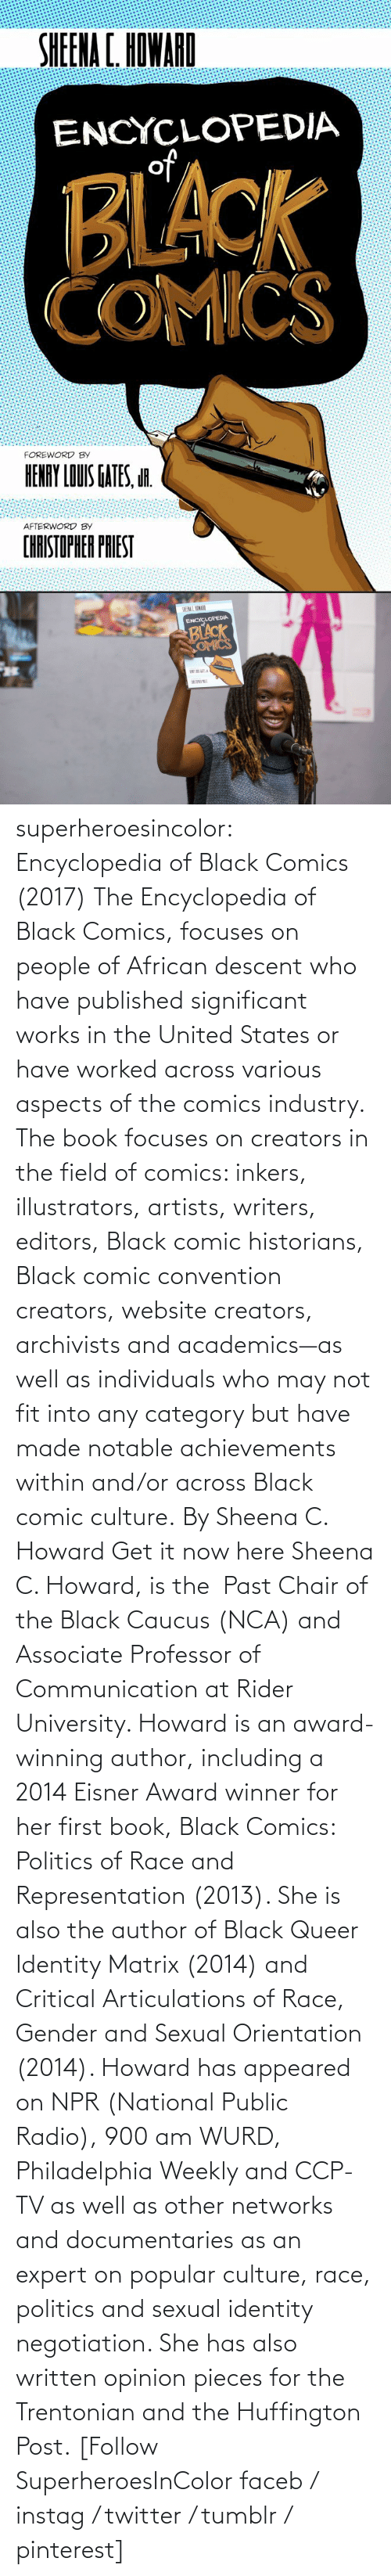 Chair: superheroesincolor: Encyclopedia of Black Comics (2017) The Encyclopedia of Black Comics, focuses on people of African descent who have published significant works in the United States or have worked across various aspects of the comics industry.  The book focuses on creators in the field of comics: inkers, illustrators, artists, writers, editors, Black comic historians, Black comic convention creators, website creators, archivists and academics—as well as individuals who may not fit into any category but have made notable achievements within and/or across Black comic culture. By Sheena C. Howard Get it now here  Sheena C. Howard, is the  Past Chair of the Black Caucus (NCA) and Associate Professor of Communication at Rider University. Howard is an award-winning author, including a 2014 Eisner Award winner for her first book, Black Comics: Politics of Race and Representation (2013). She is also the author of Black Queer Identity Matrix (2014) and Critical Articulations of Race, Gender and Sexual Orientation (2014). Howard has appeared on NPR (National Public Radio), 900 am WURD, Philadelphia Weekly and CCP-TV as well as other networks and documentaries as an expert on popular culture, race, politics and sexual identity negotiation. She has also written opinion pieces for the Trentonian and the Huffington Post.   [Follow SuperheroesInColor faceb / instag / twitter / tumblr / pinterest]